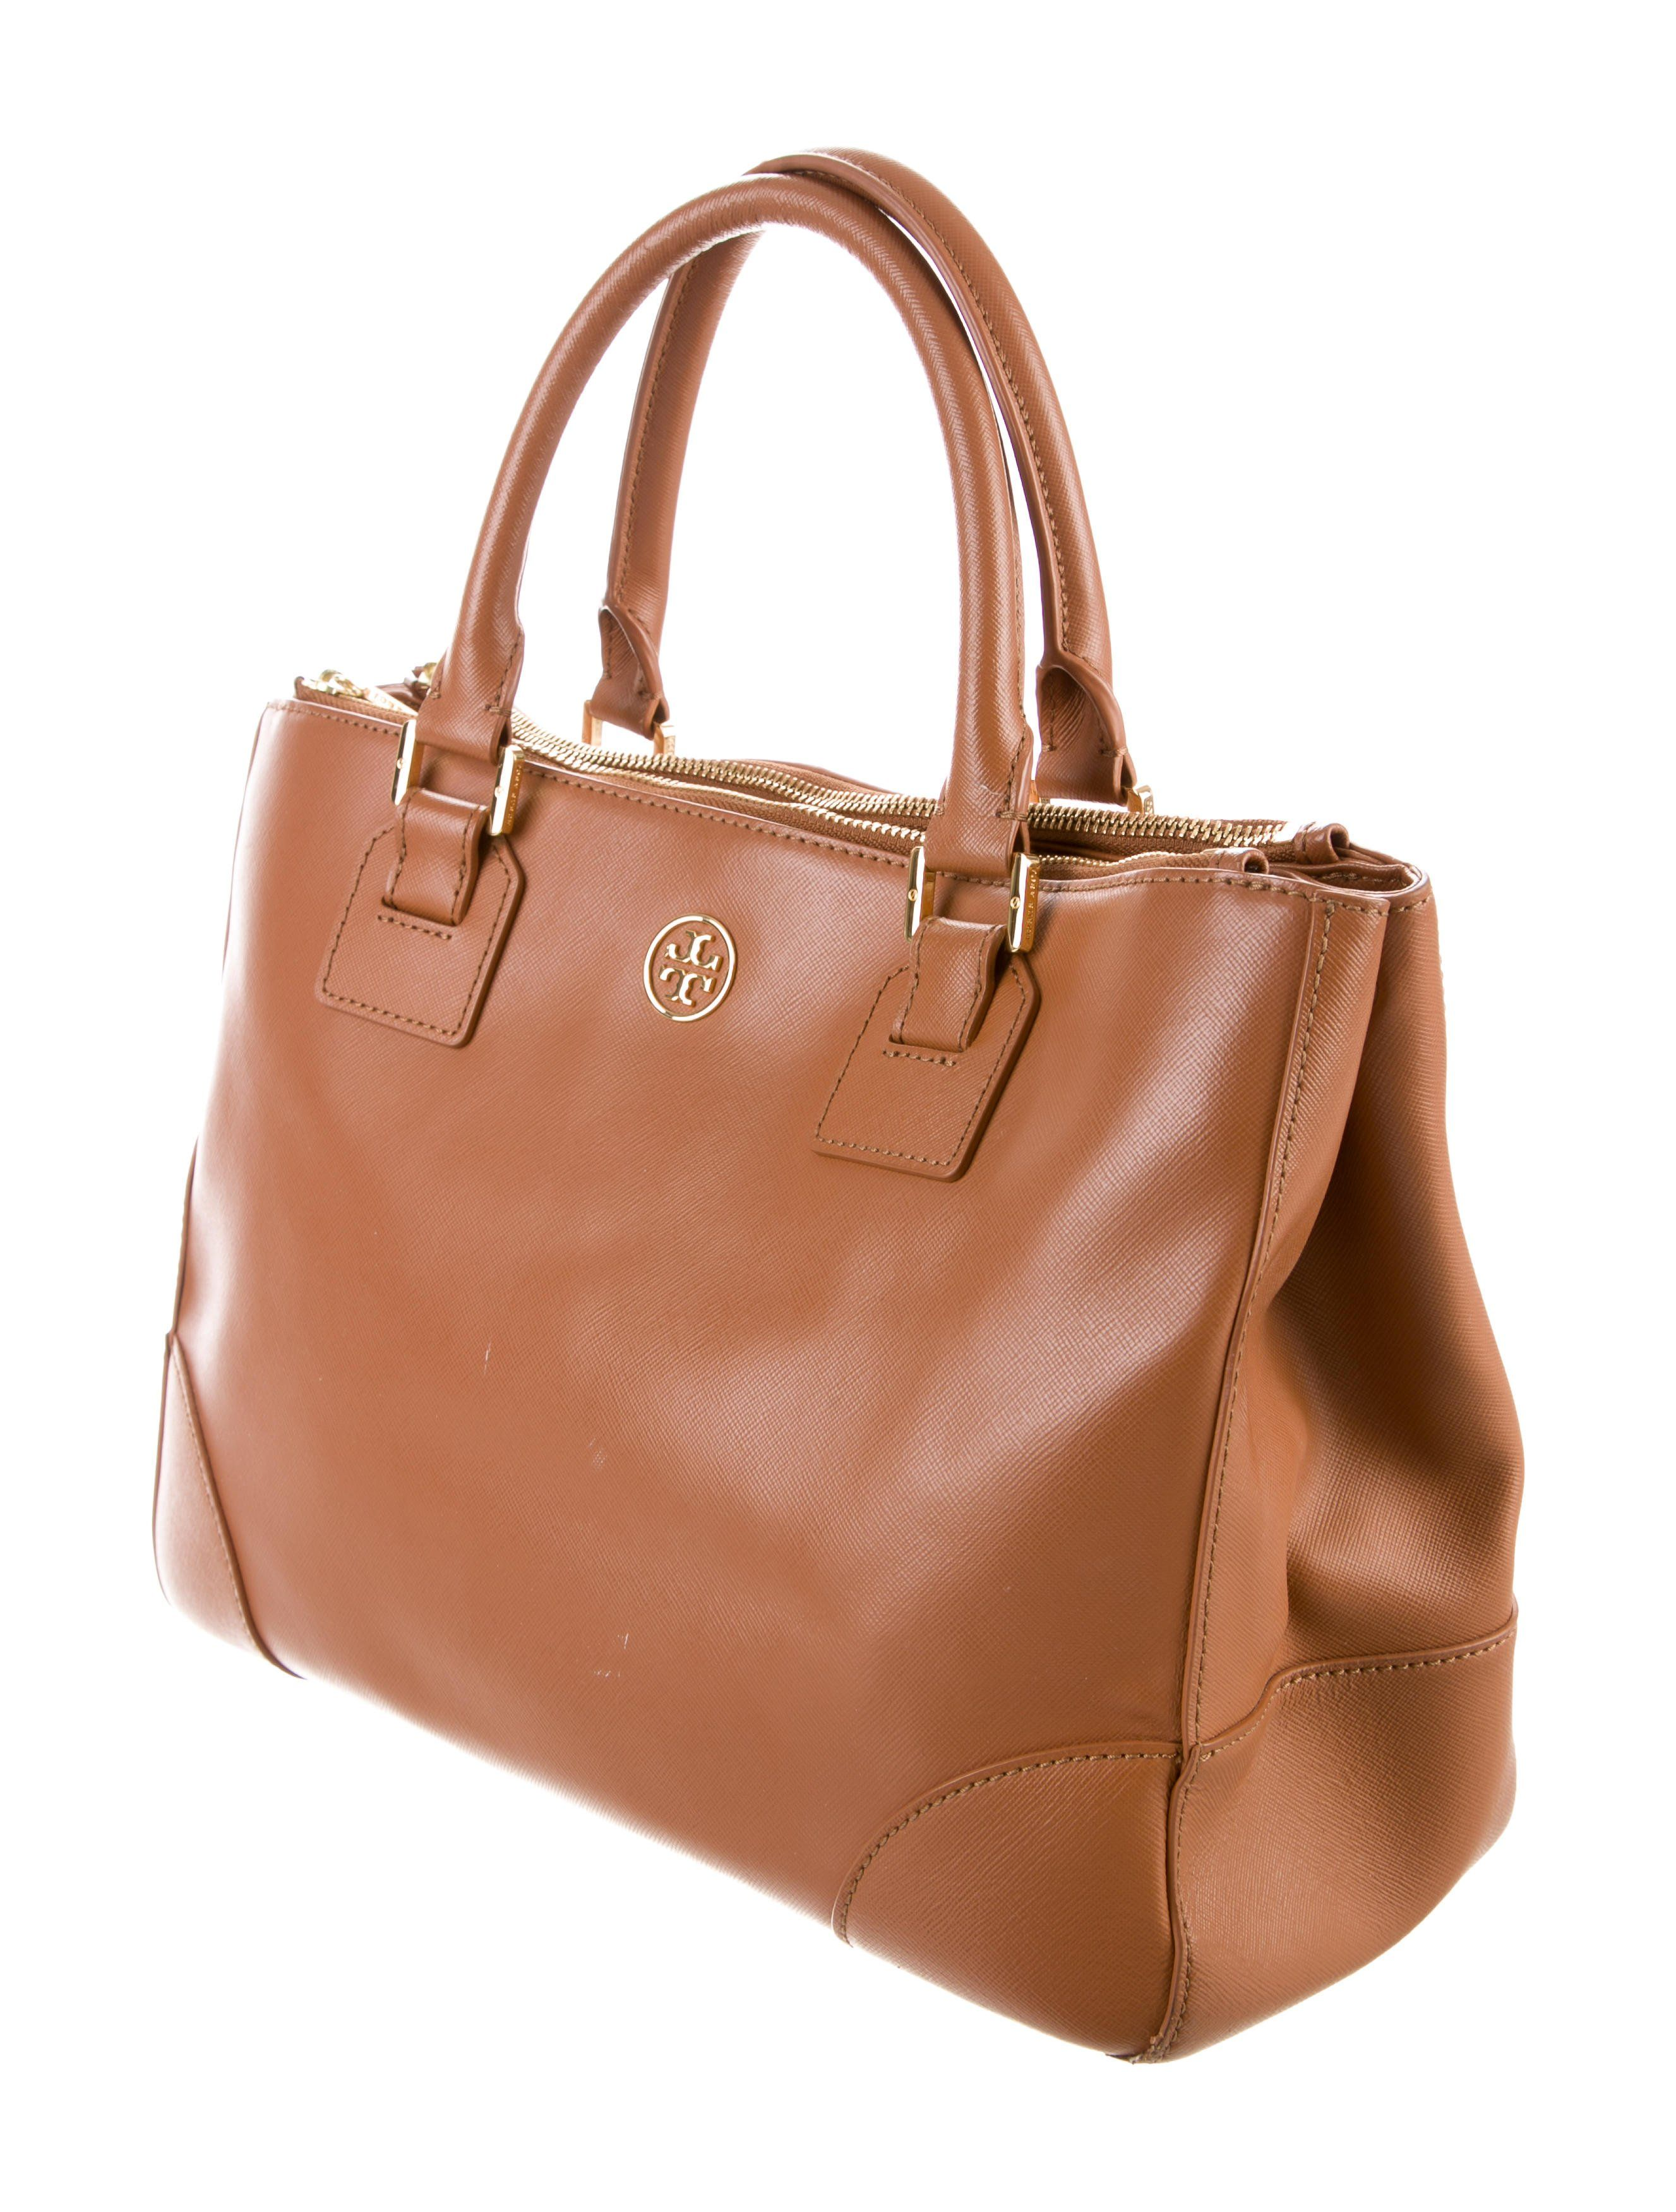 1fa2b568fb Brown saffiano leather Tory Burch Robinson Double Zip Tote with gold-tone  hardware, dual rolled top handles, single detachable flat shoulder strap  with buck